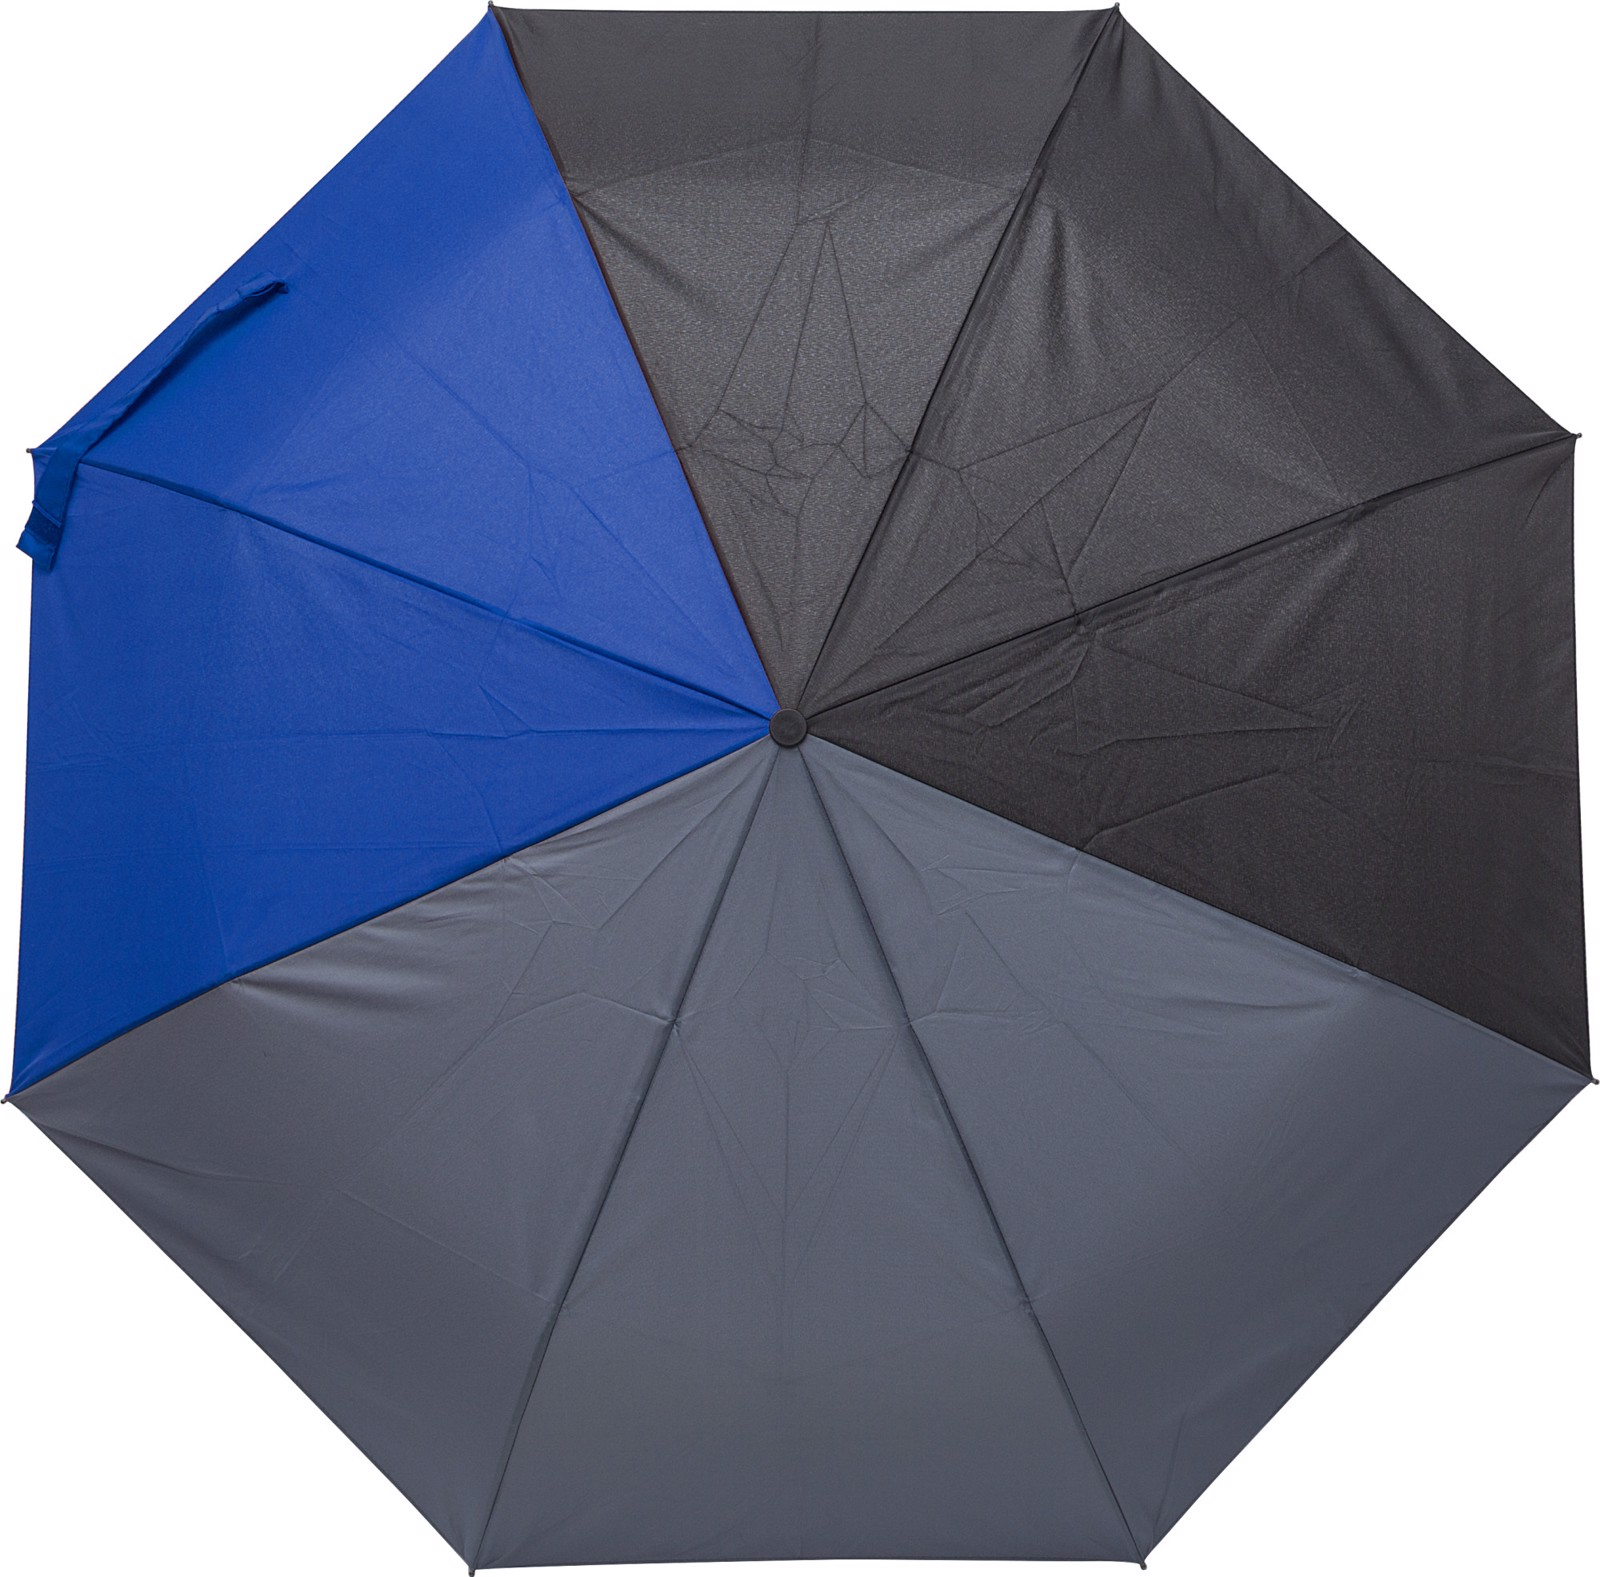 Pongee (190T) umbrella - Cobalt Blue